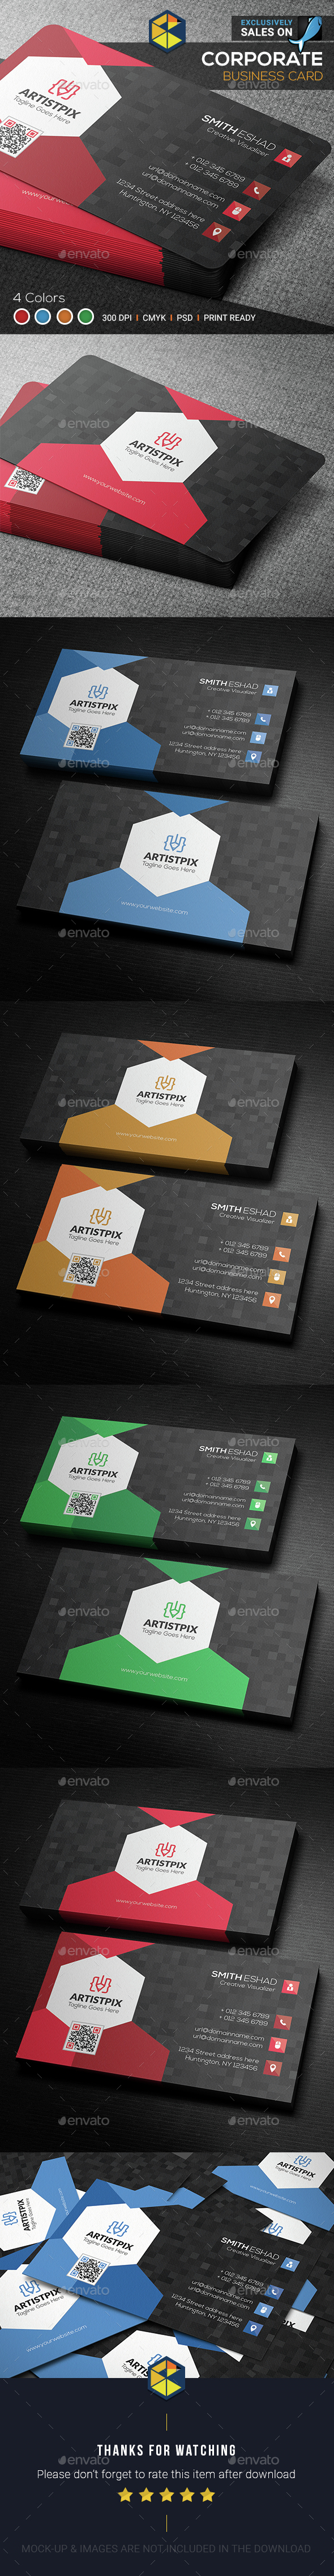 Hexagon Shaped Business Card Template PSD. Download here: http ...